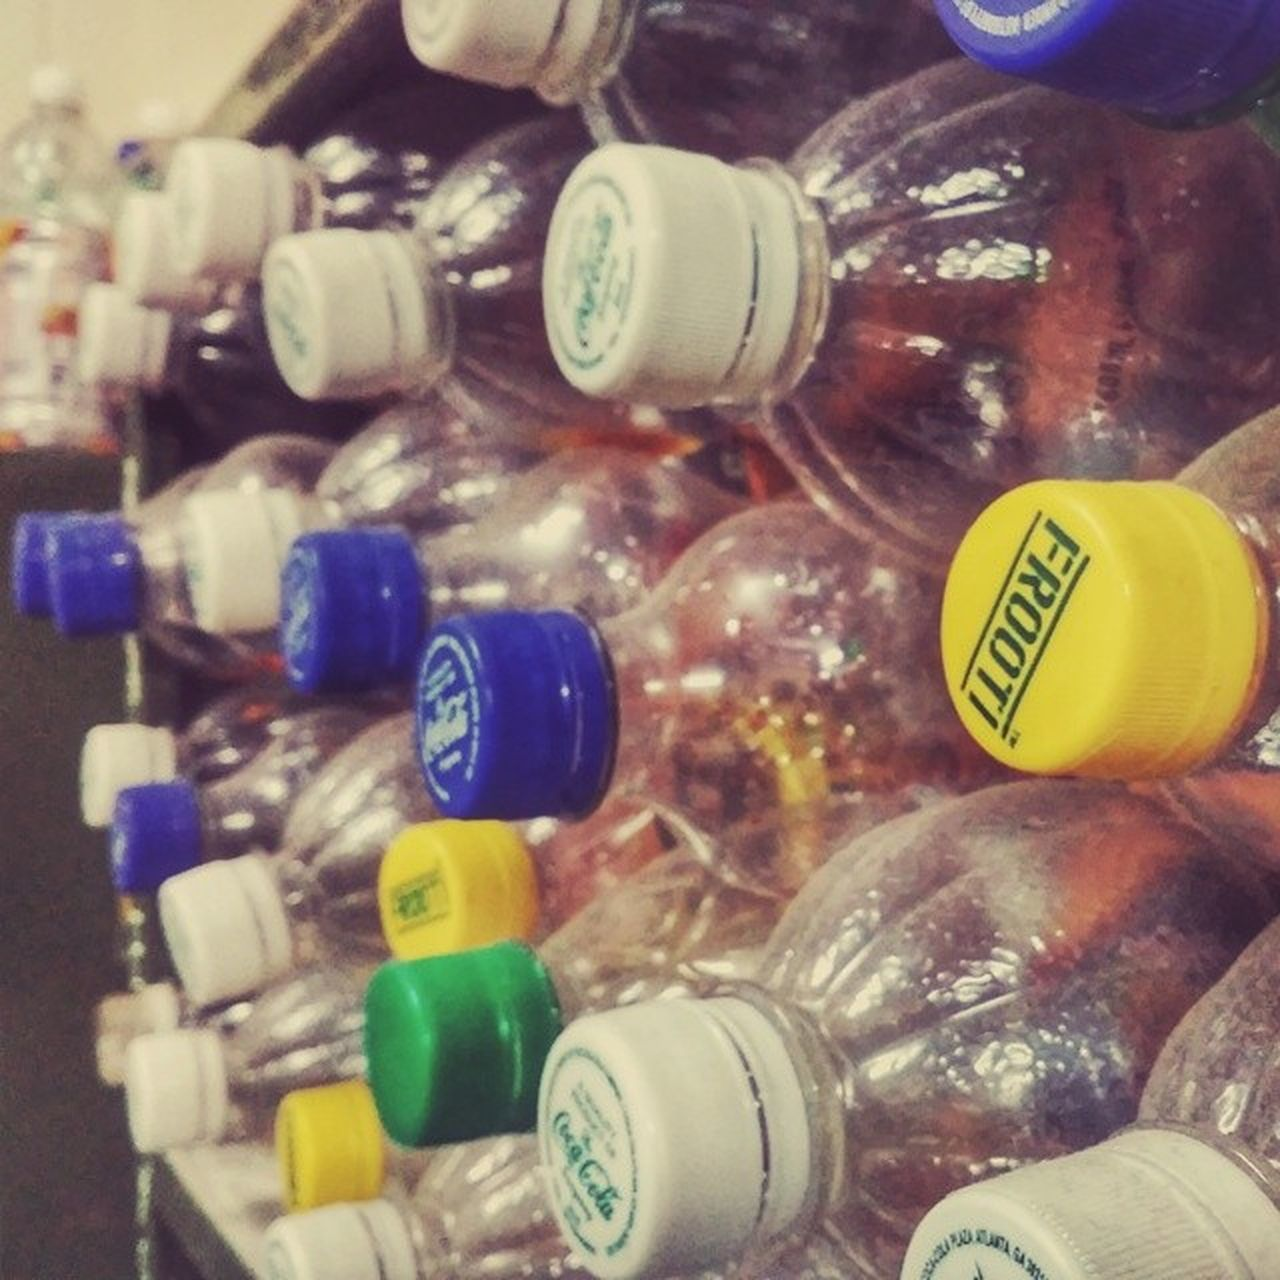 bottle, indoors, close-up, no people, variation, large group of objects, price tag, day